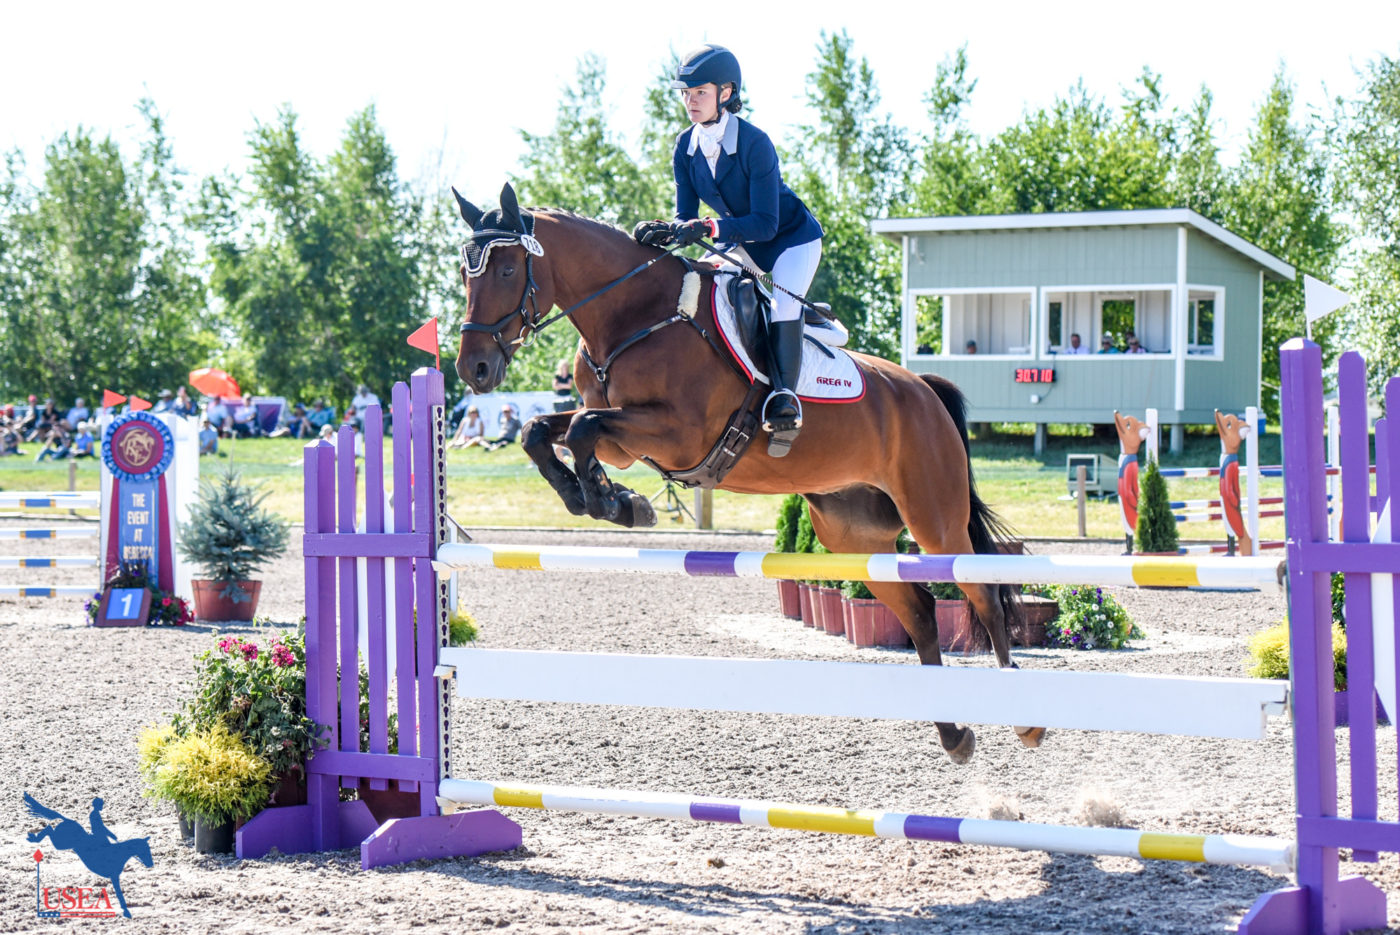 5th - Caitlyn Ruud and Up To You De Lorage